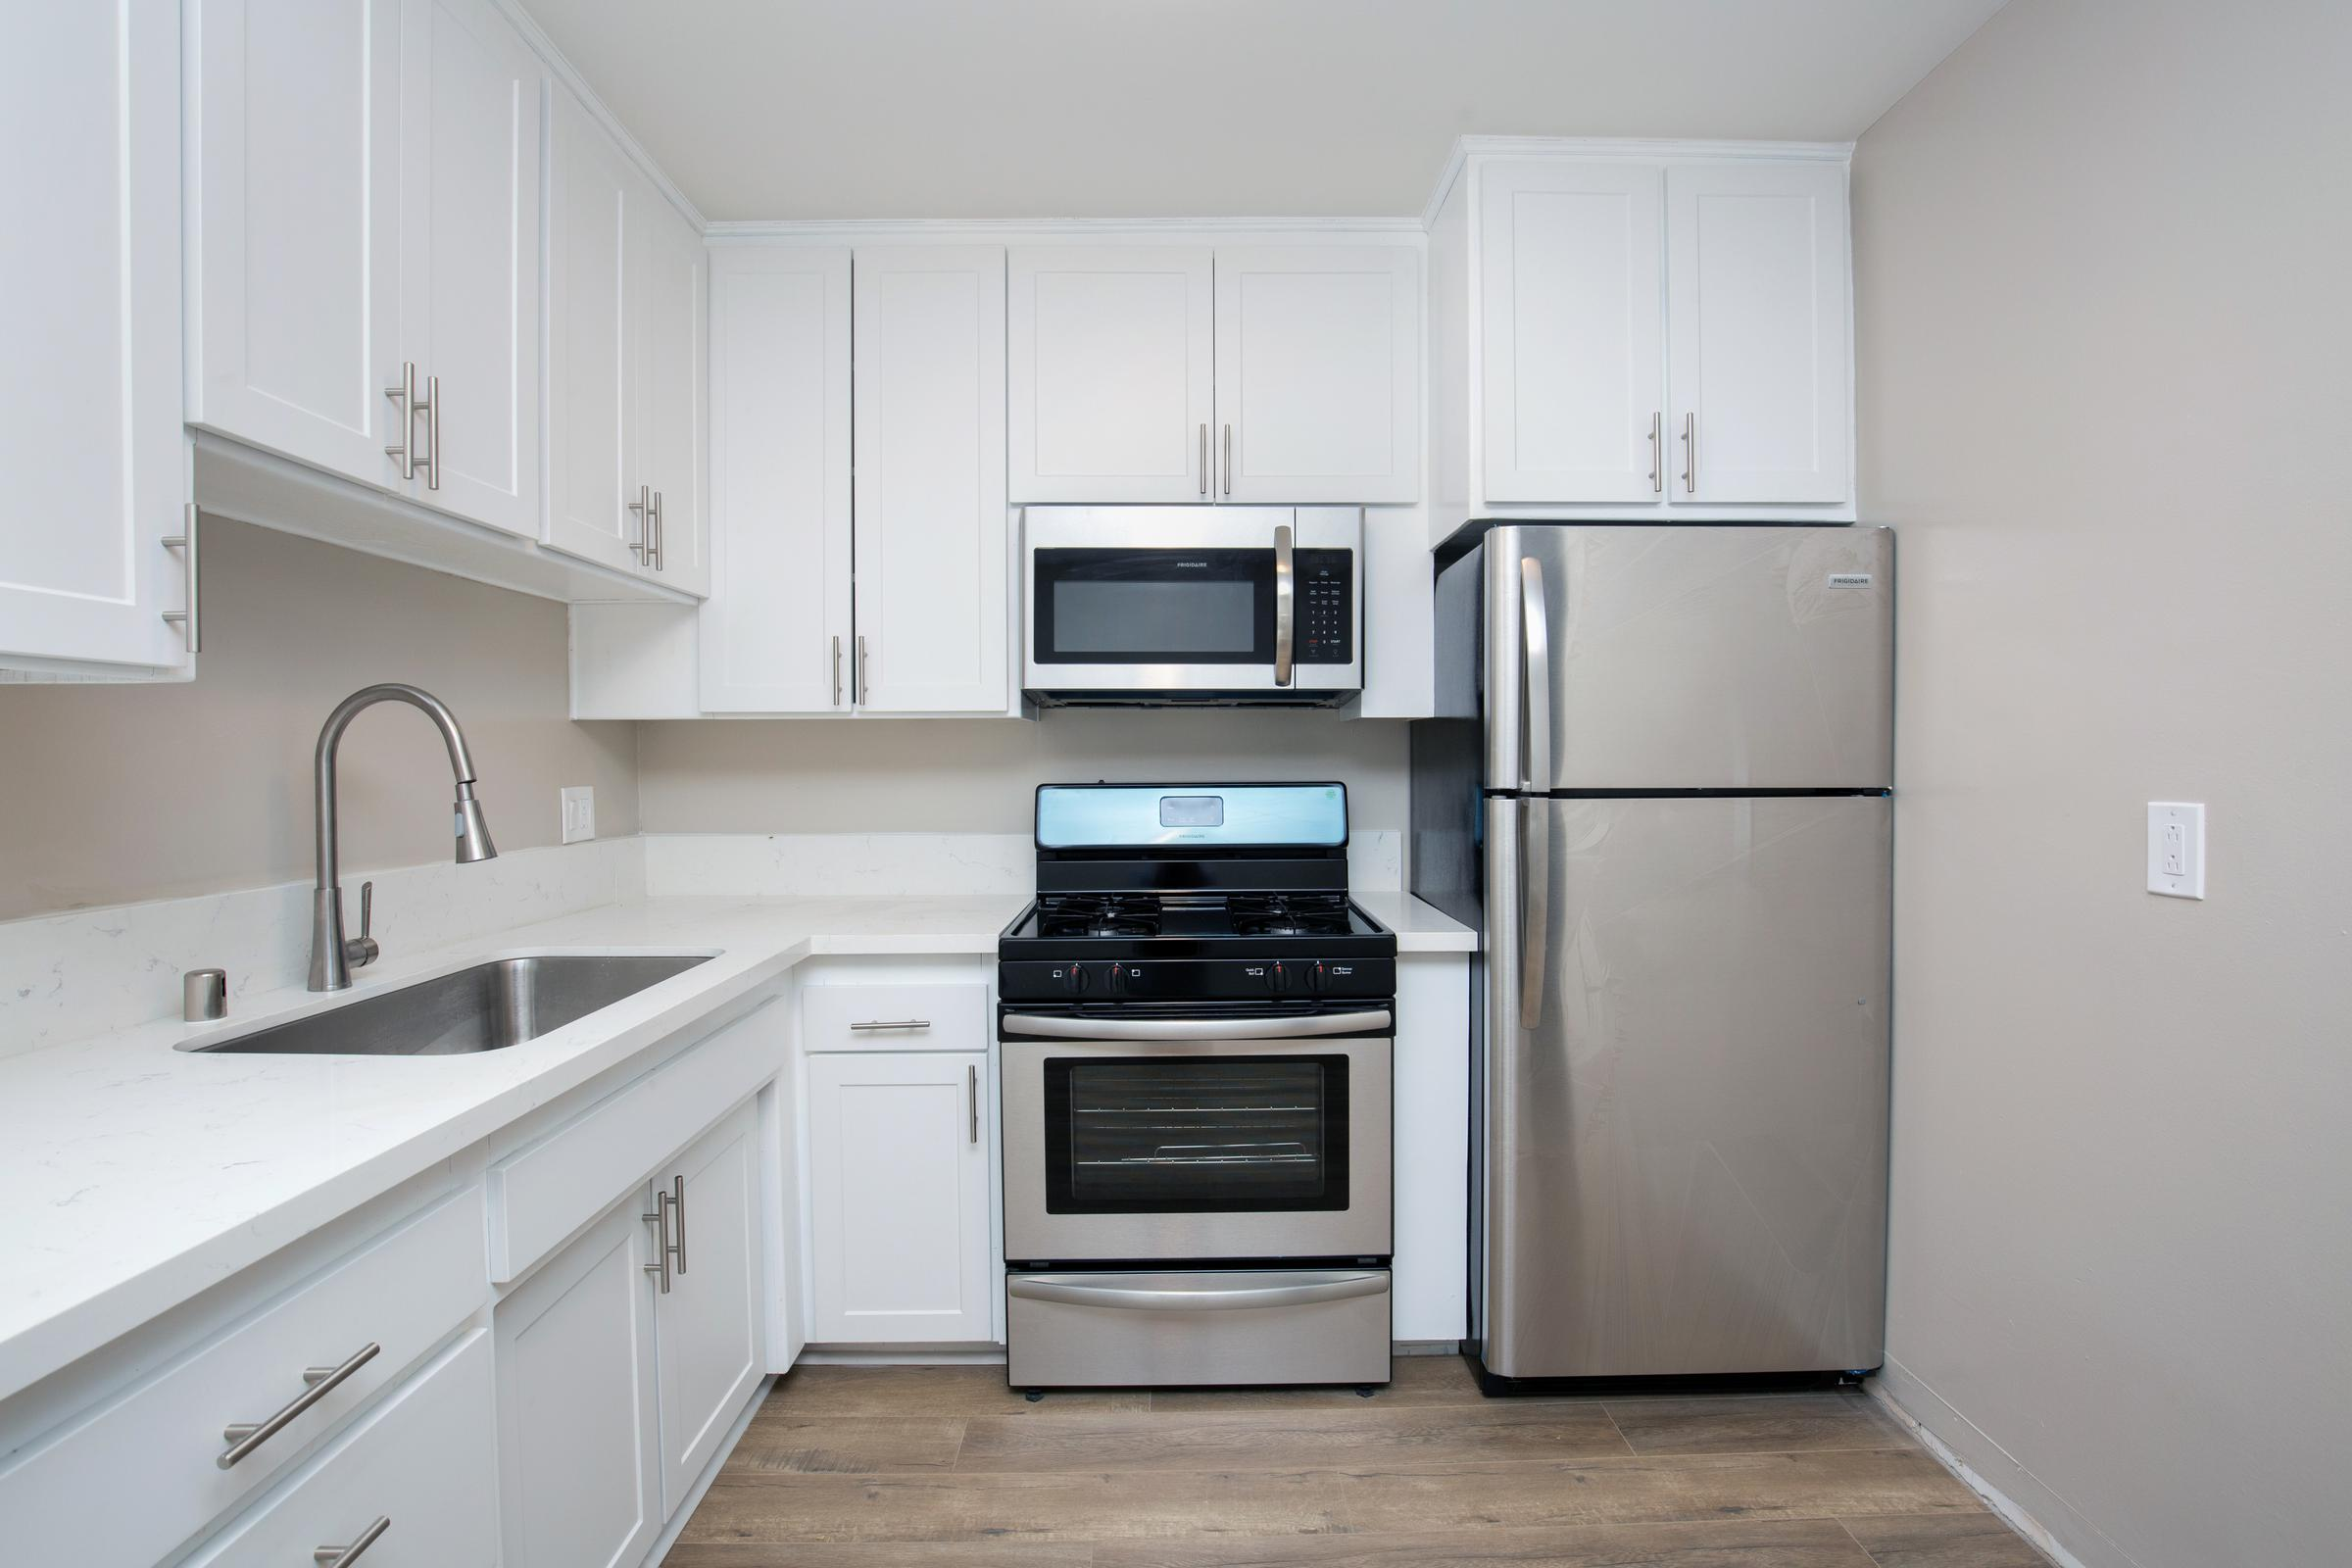 AMPLE CABINET SPACE AT THE CAPRI GLENDALE